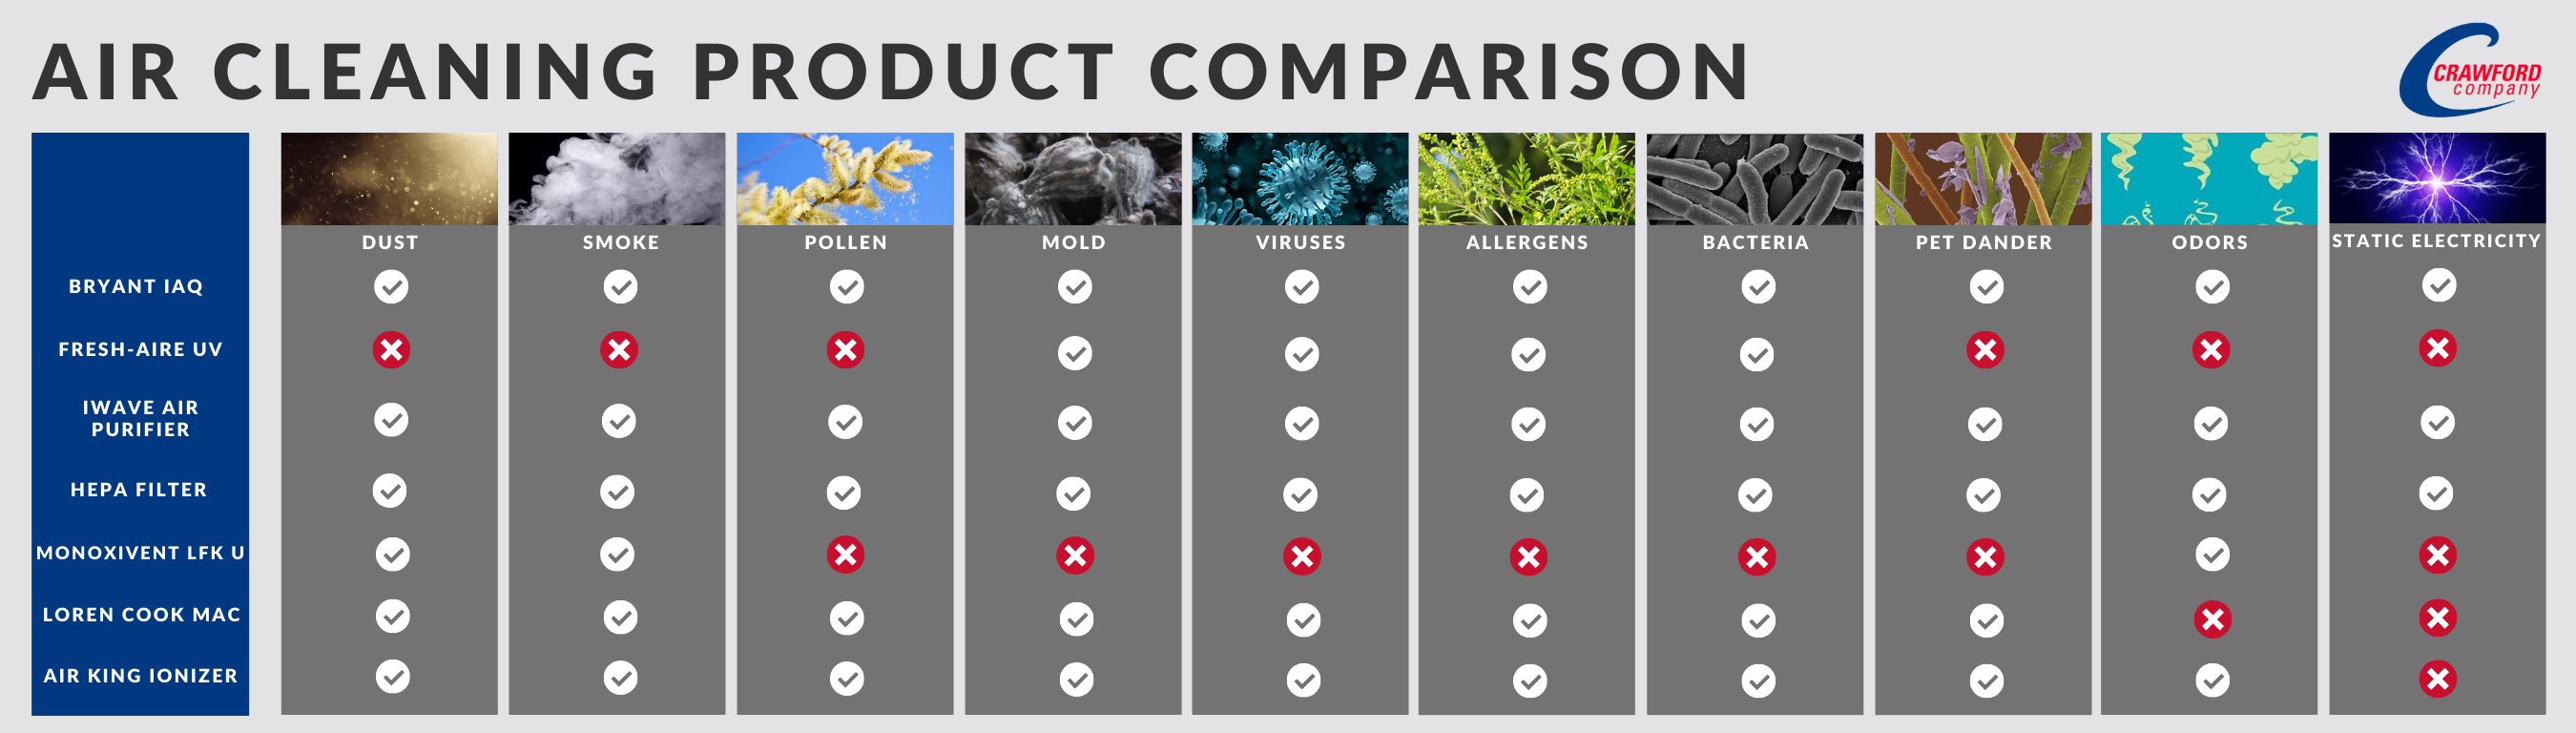 Air cleaning product comparison table